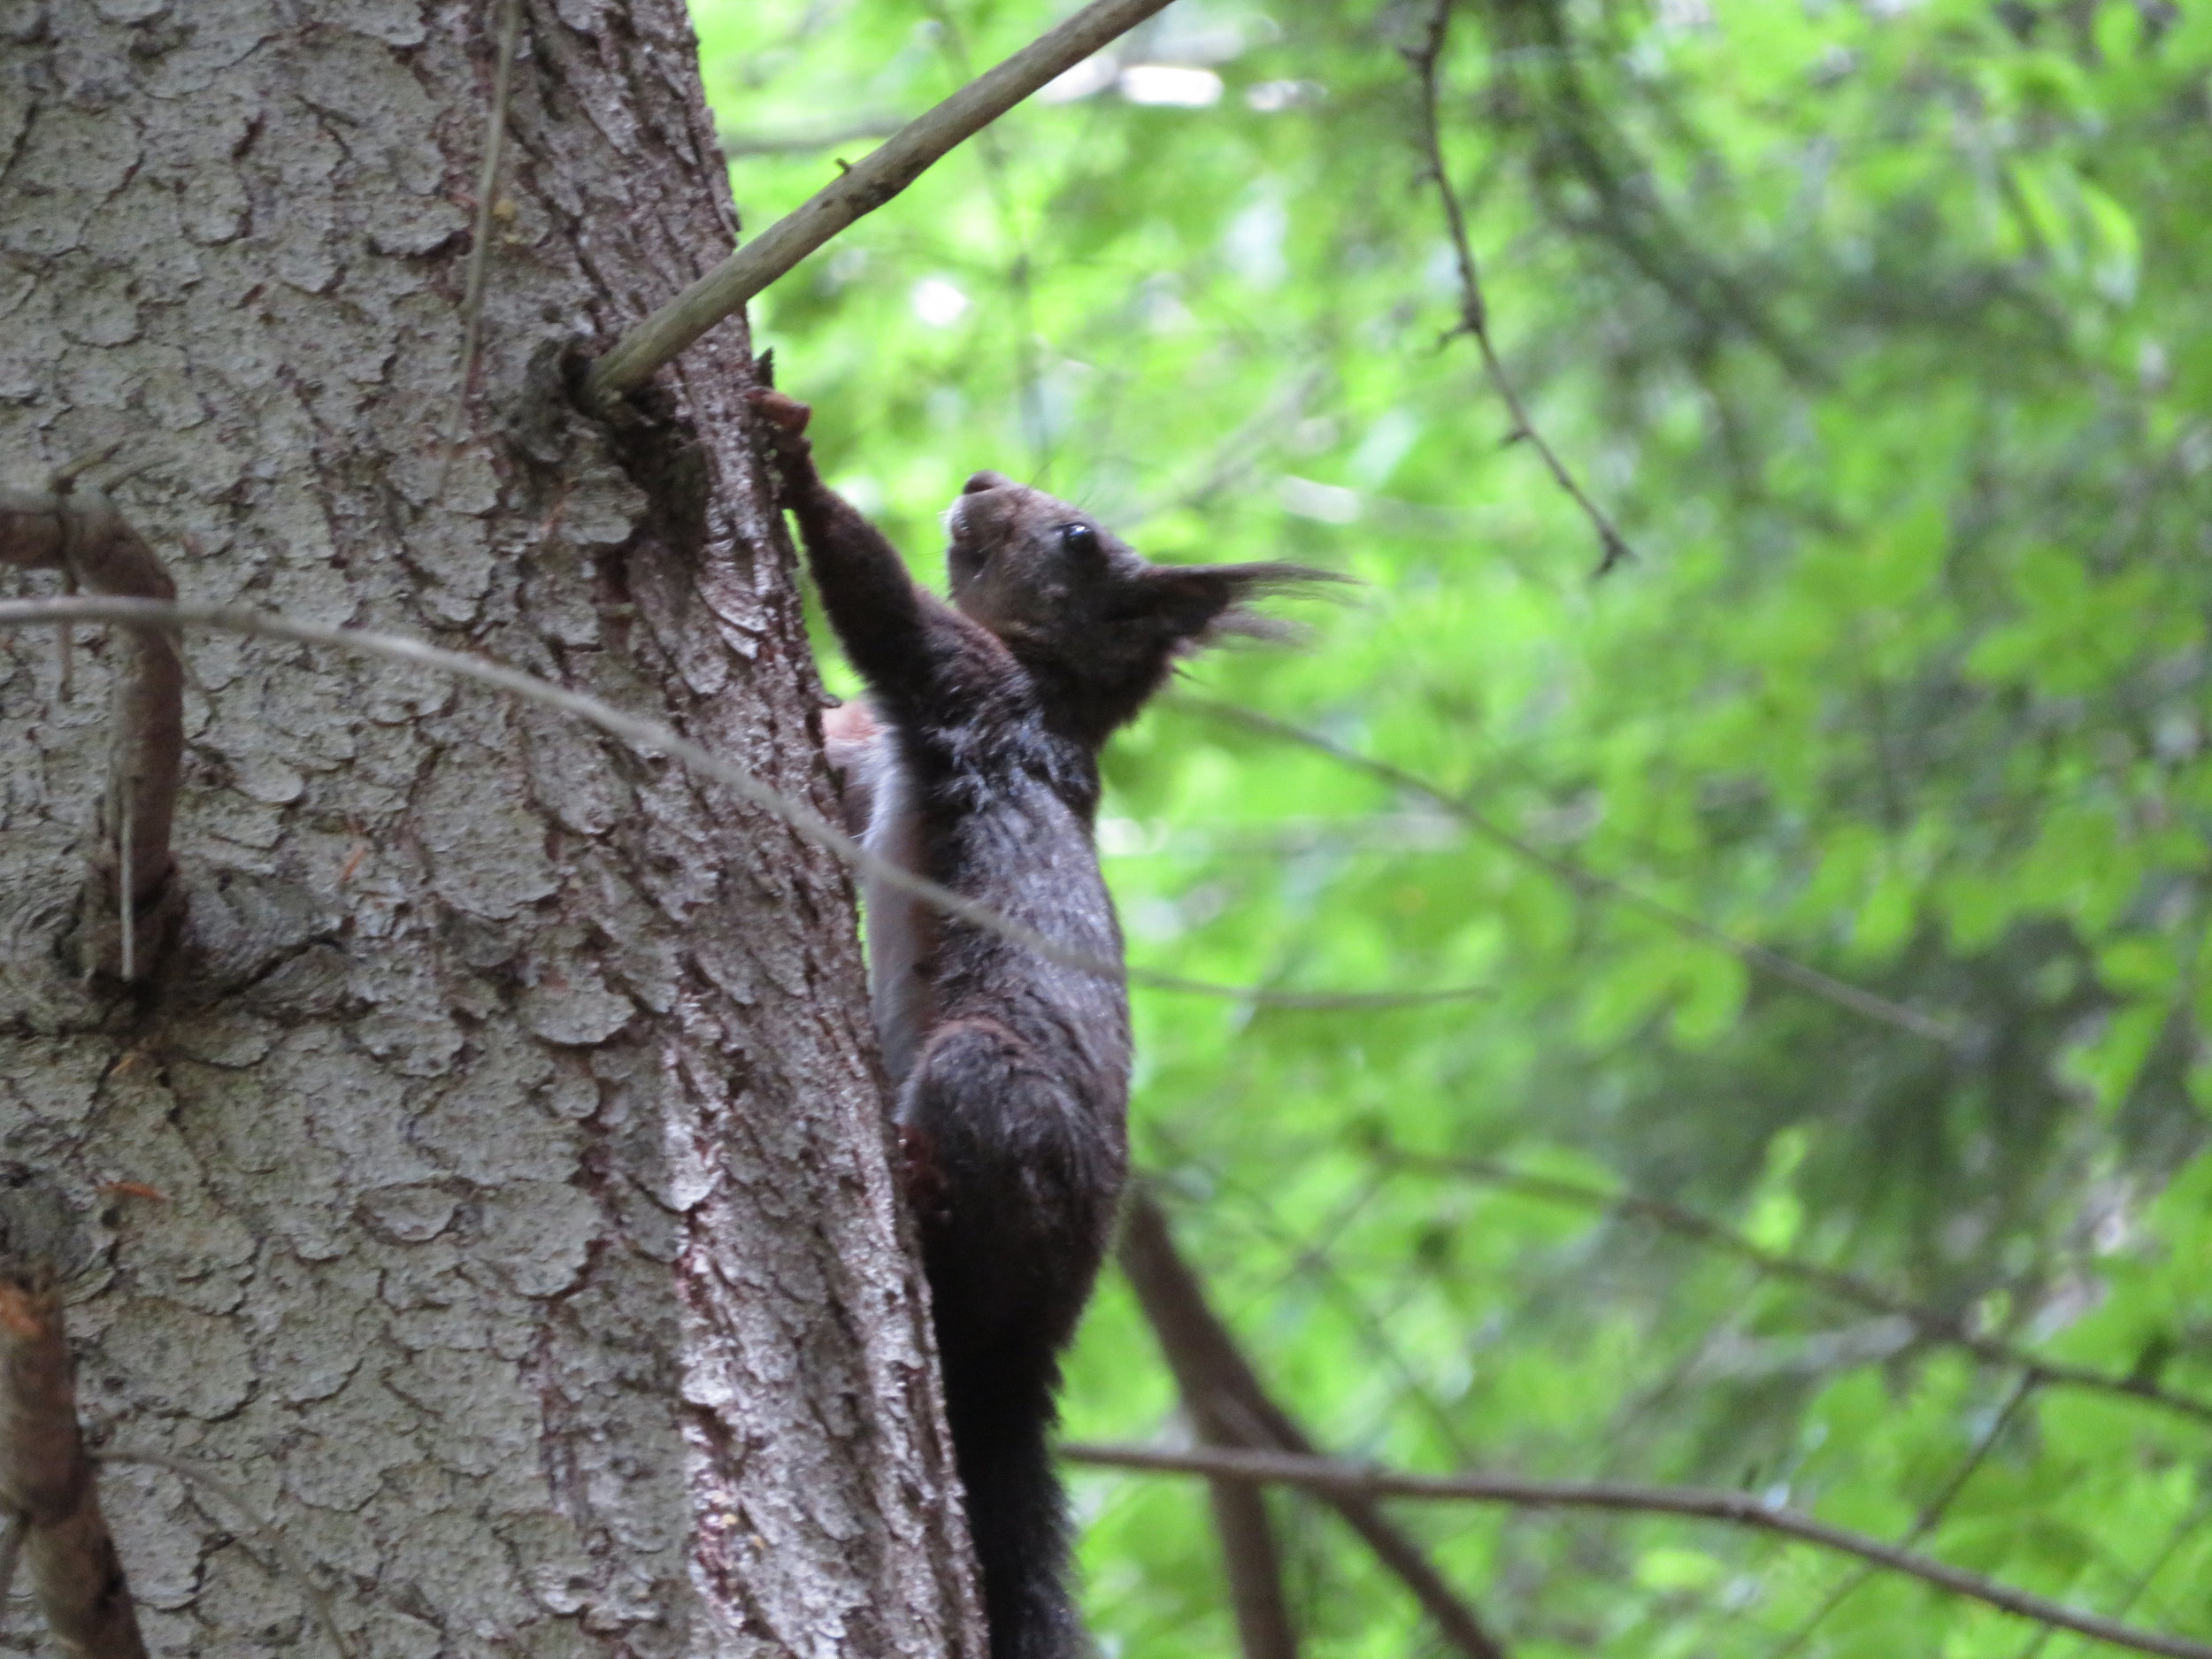 A Bavarian alpine squirrel … check out the those great ear tufts!